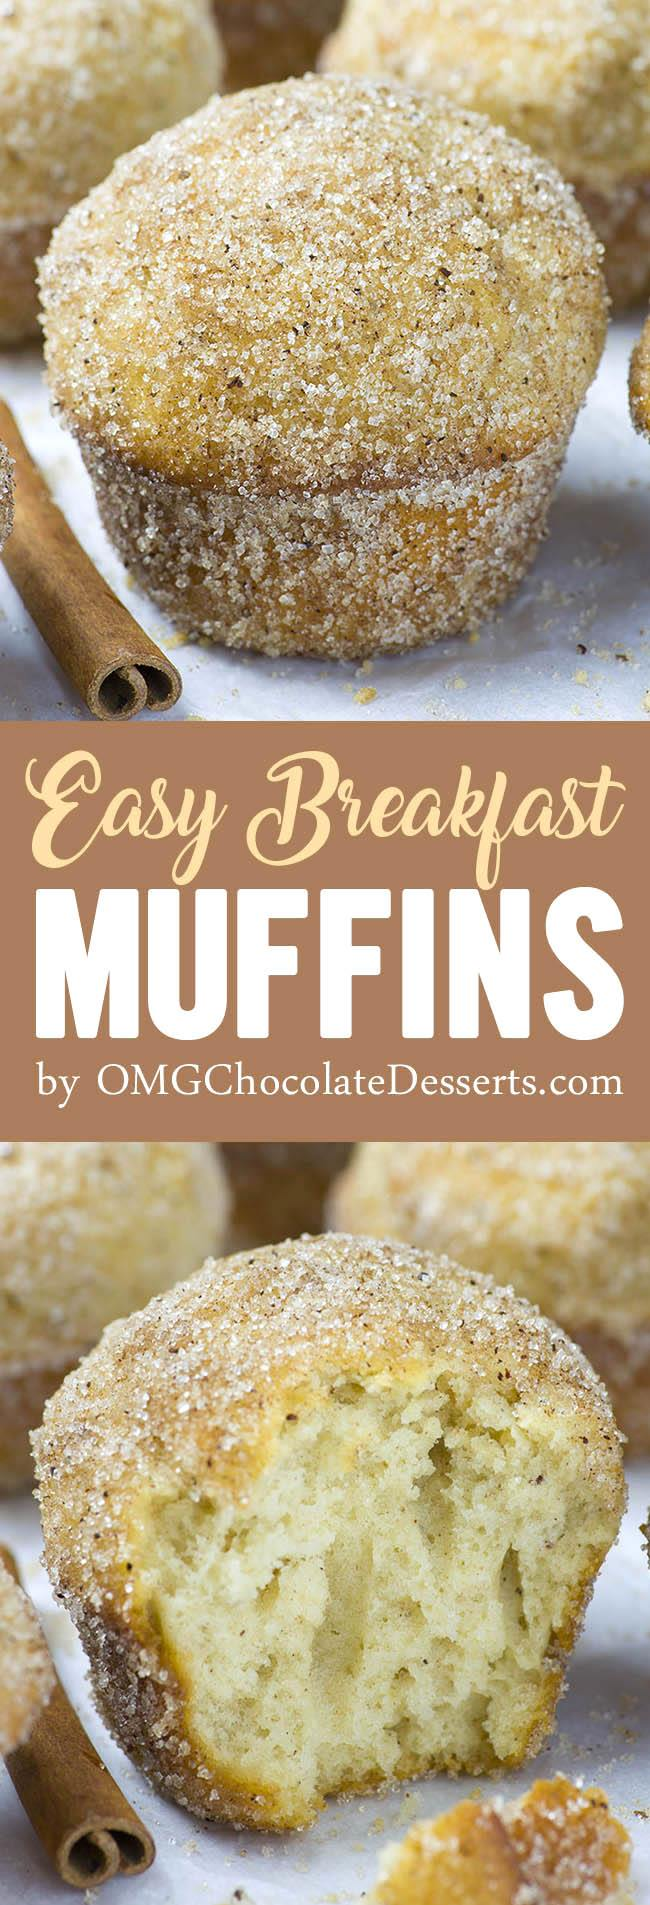 Looking For A Quick And Easy Make Ahead Breakfast Recipe Muffins Are Perfect